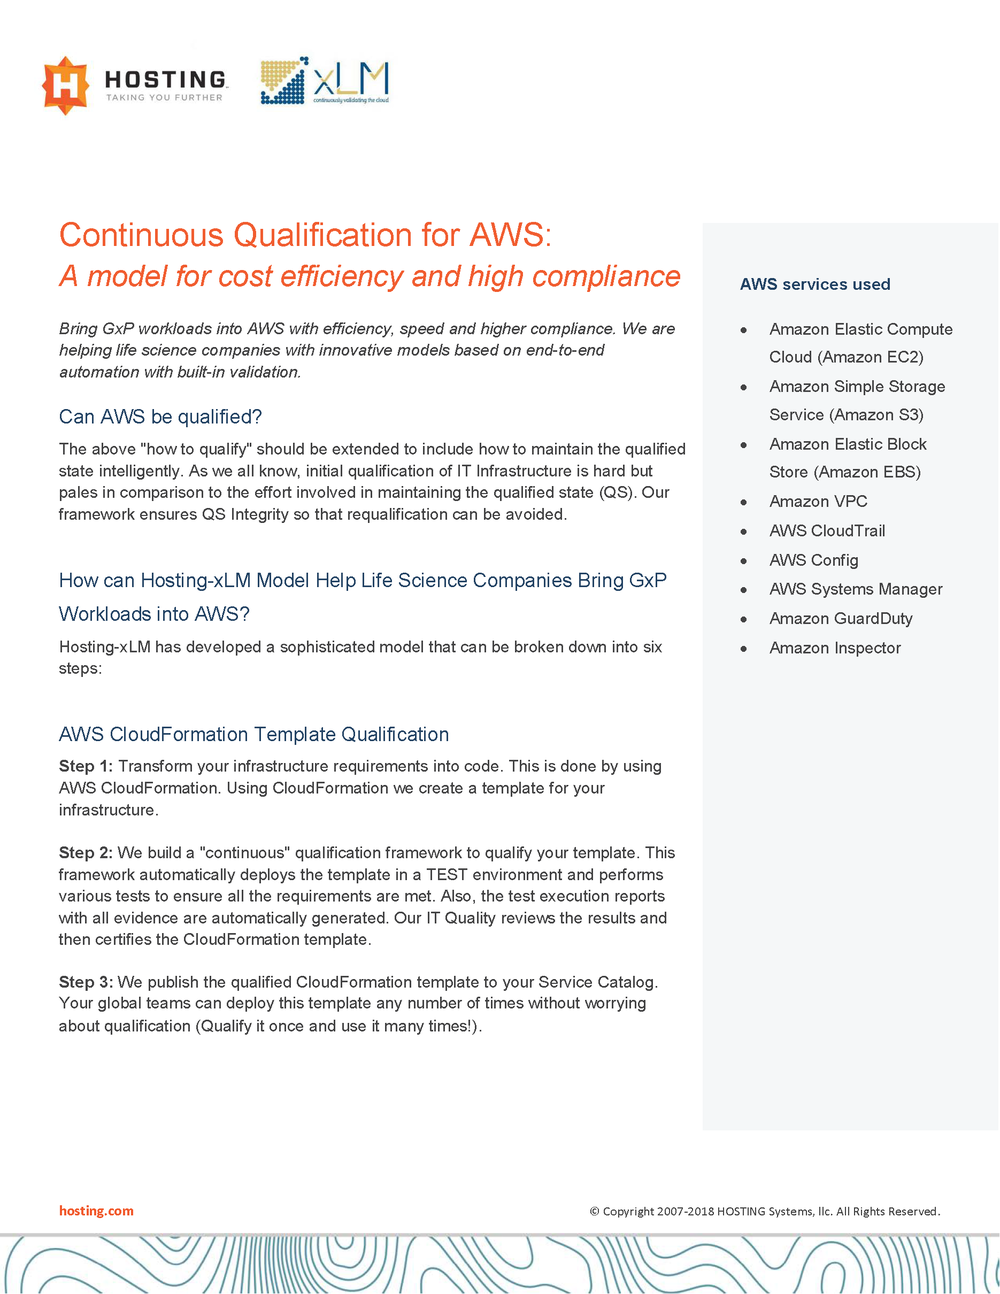 Continuous Qualification for AWS Step by Step Guide_Page_1.png